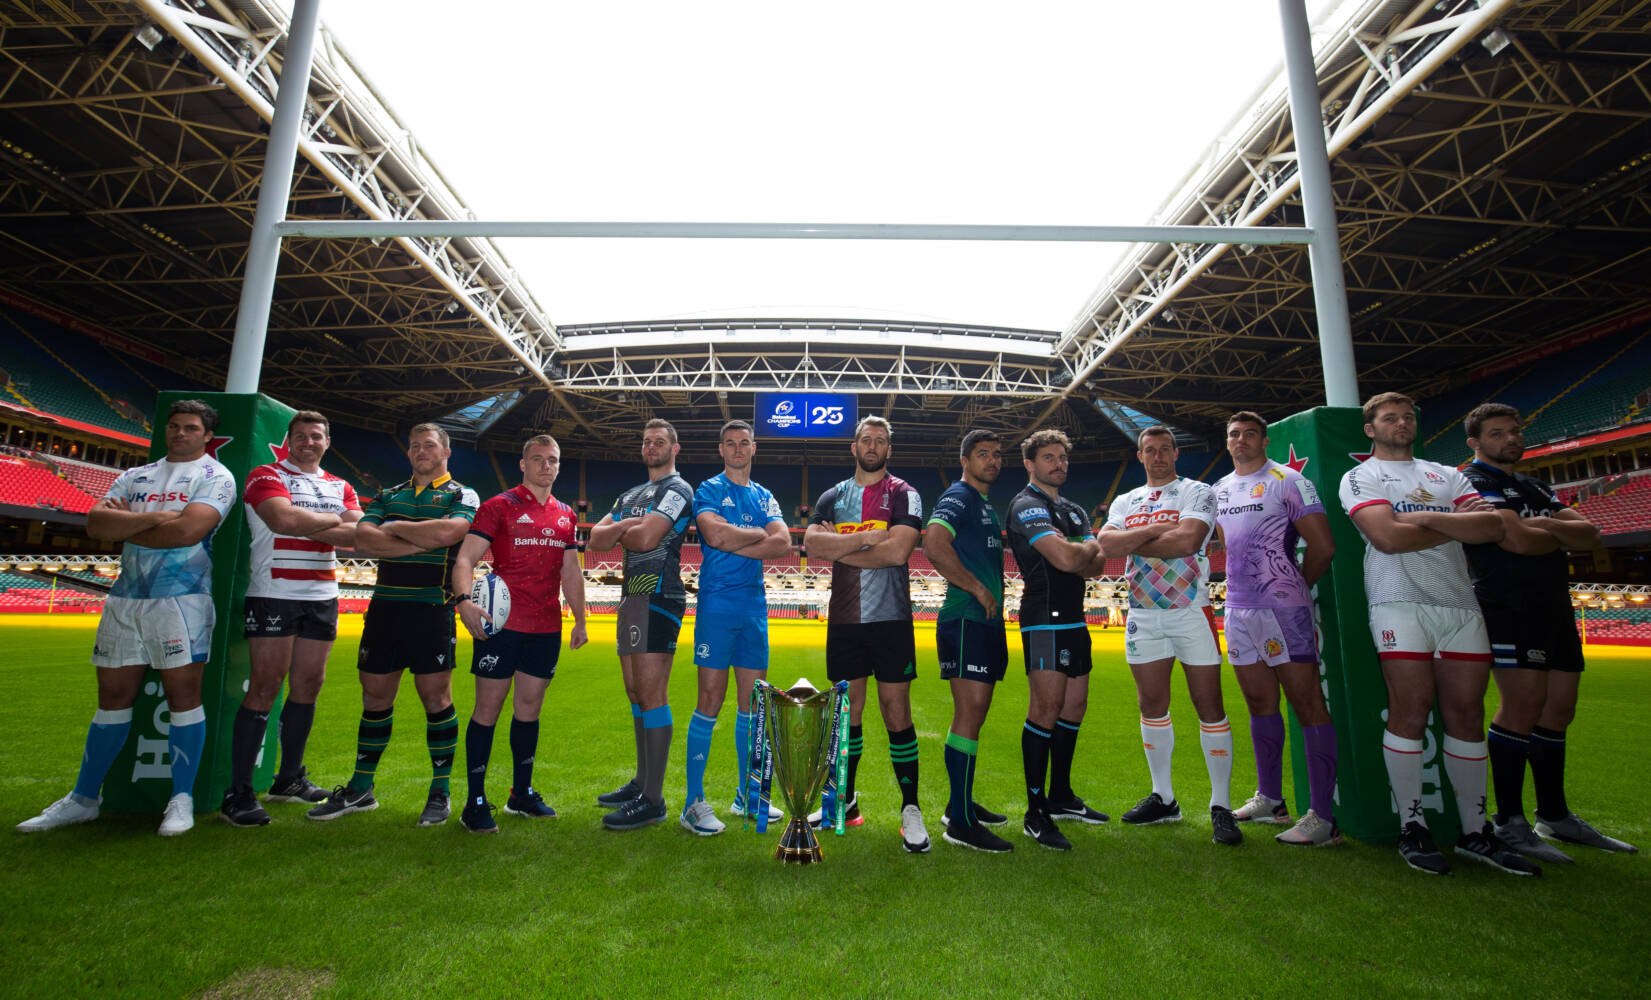 25th anniversary of European club rugby launched in Cardiff